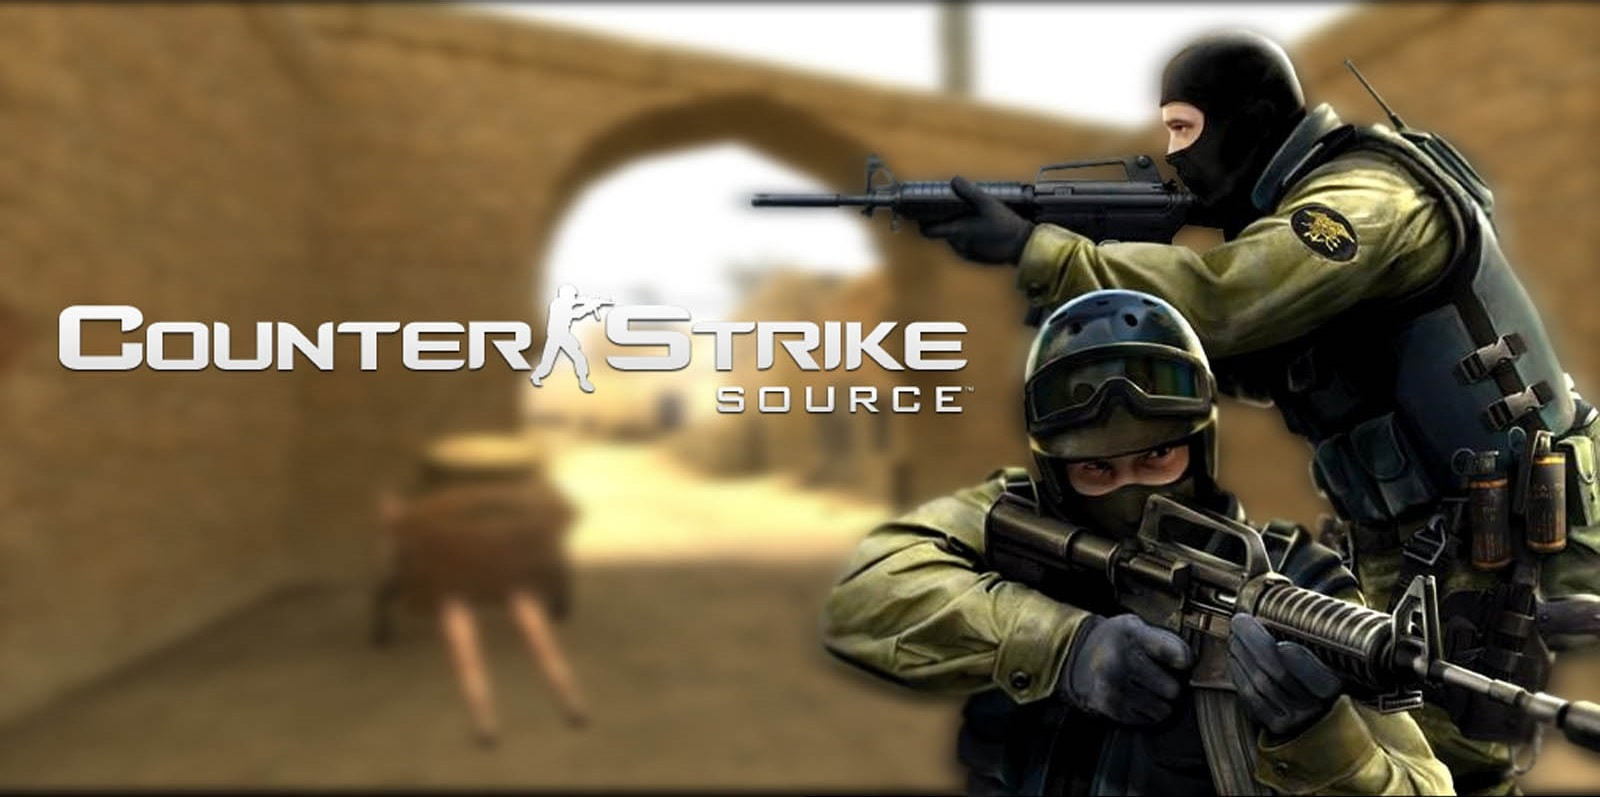 Counter strike source hd desktop wallpapers 7wallpapers counter strike source desktop wallpapers voltagebd Choice Image